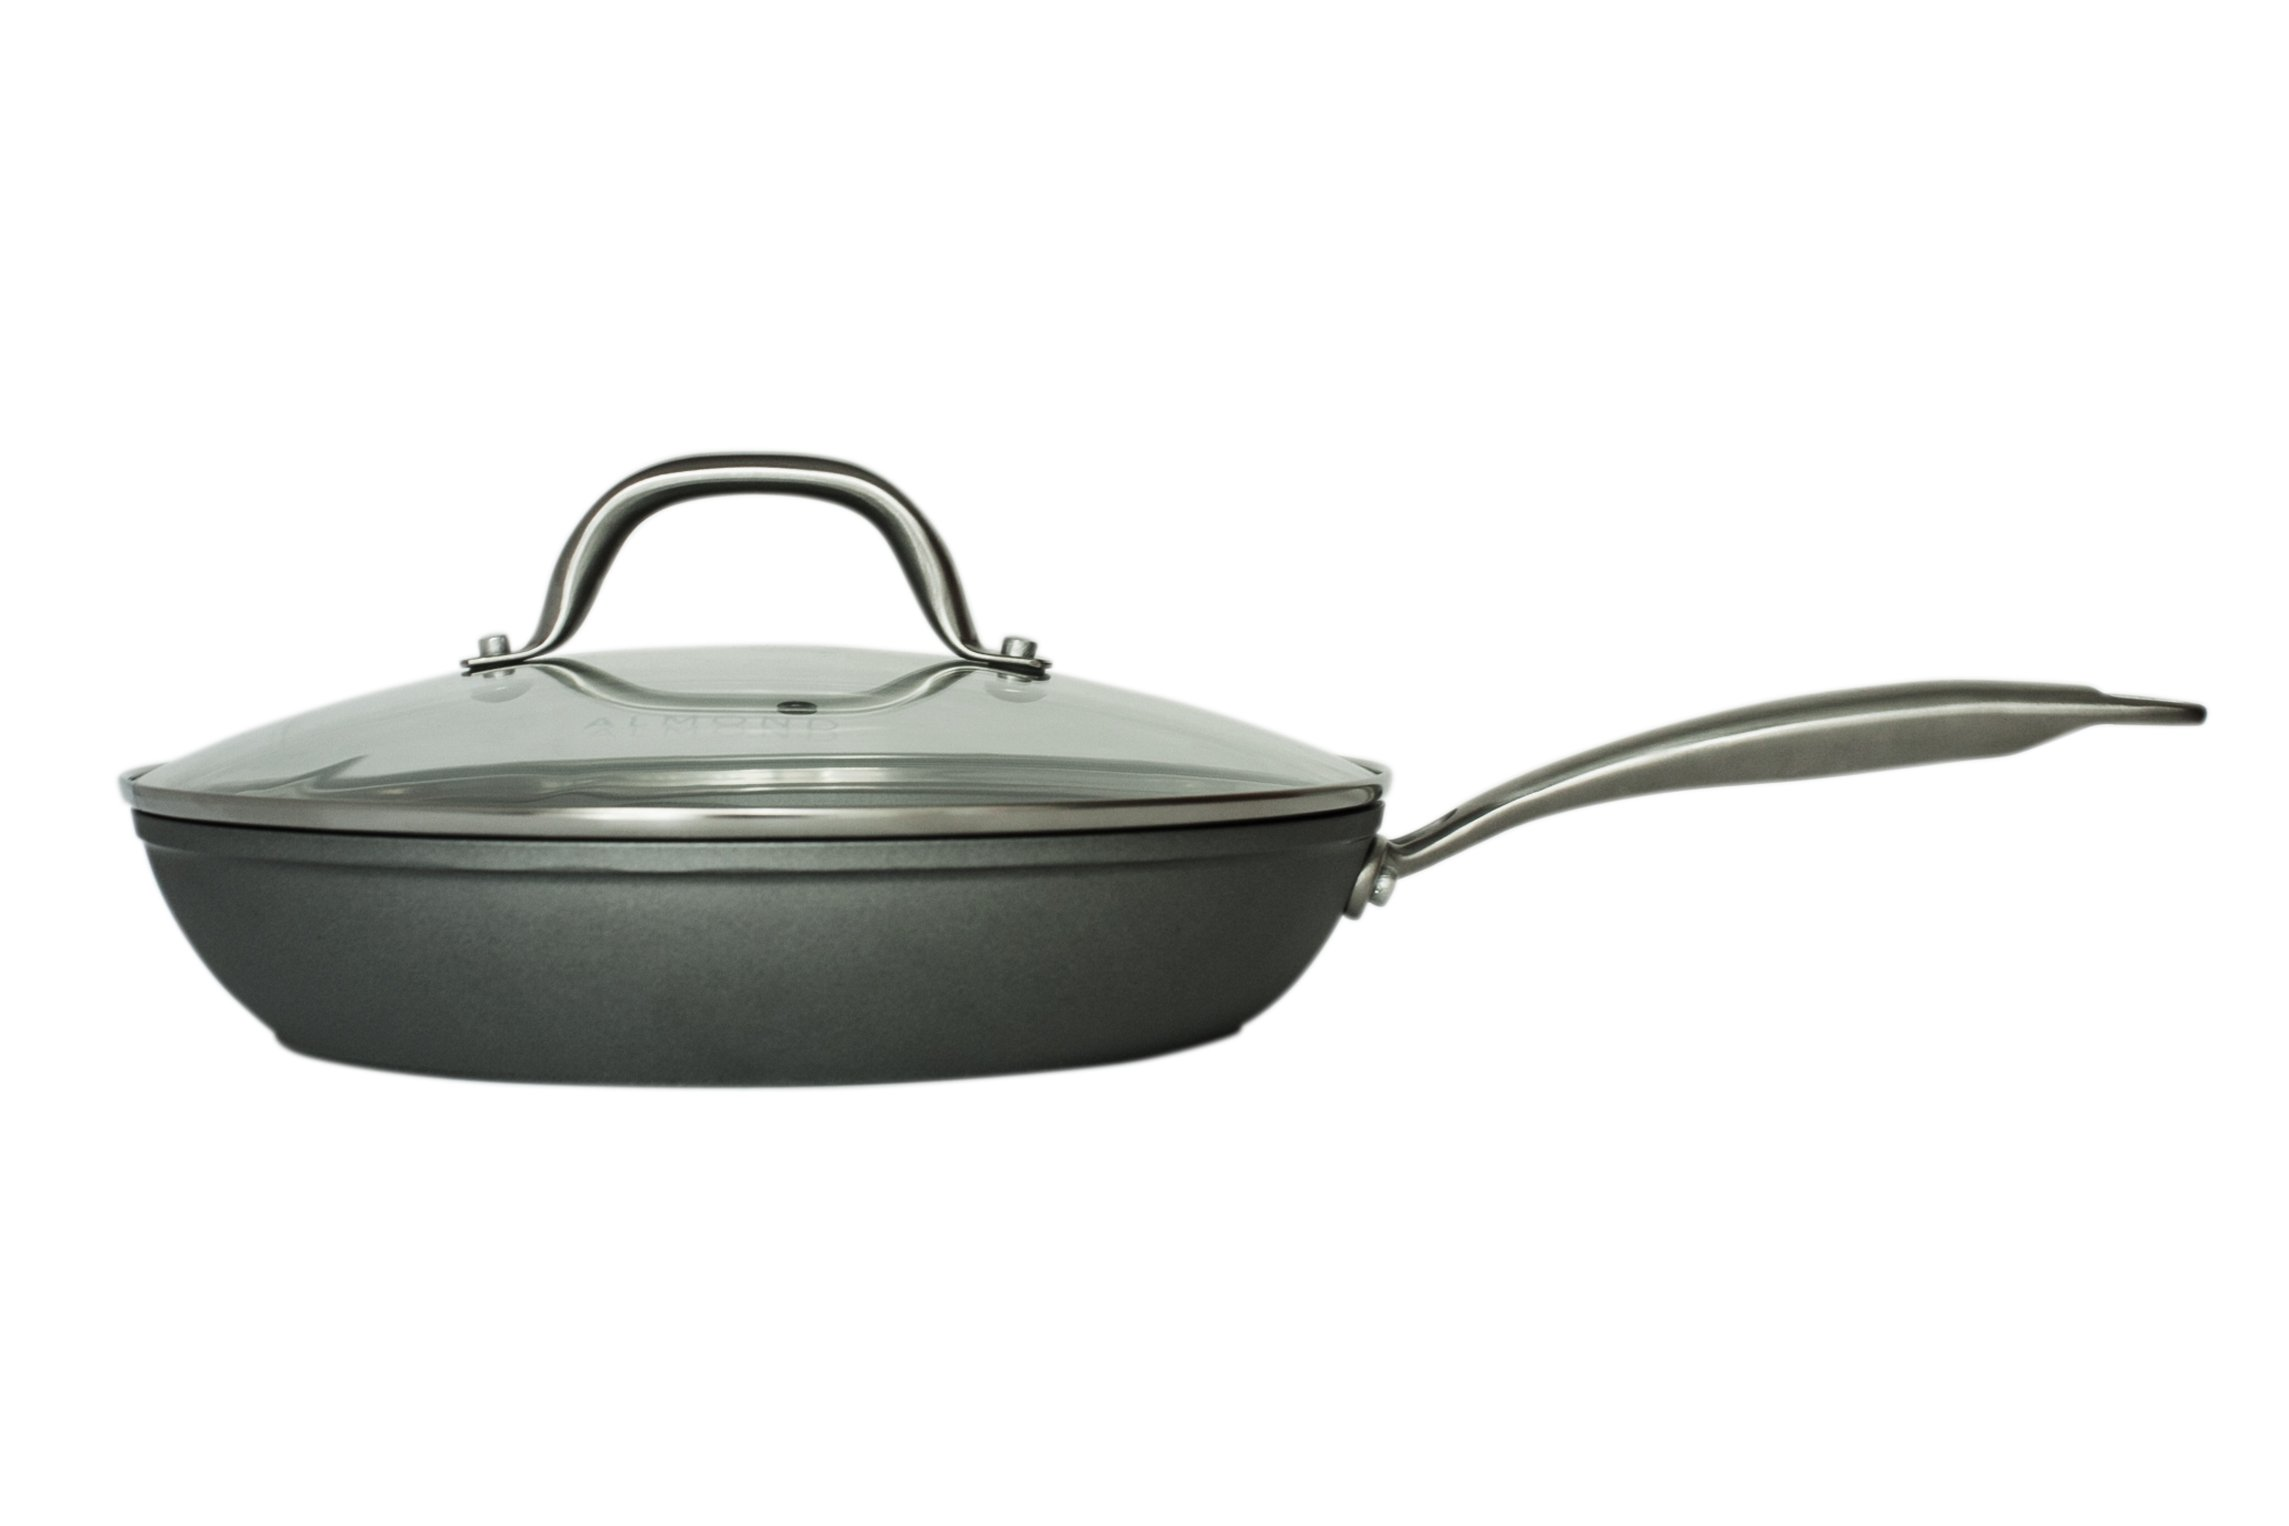 Nonstick Ceramic Copper Frying Pan Non Stick 12 Inches